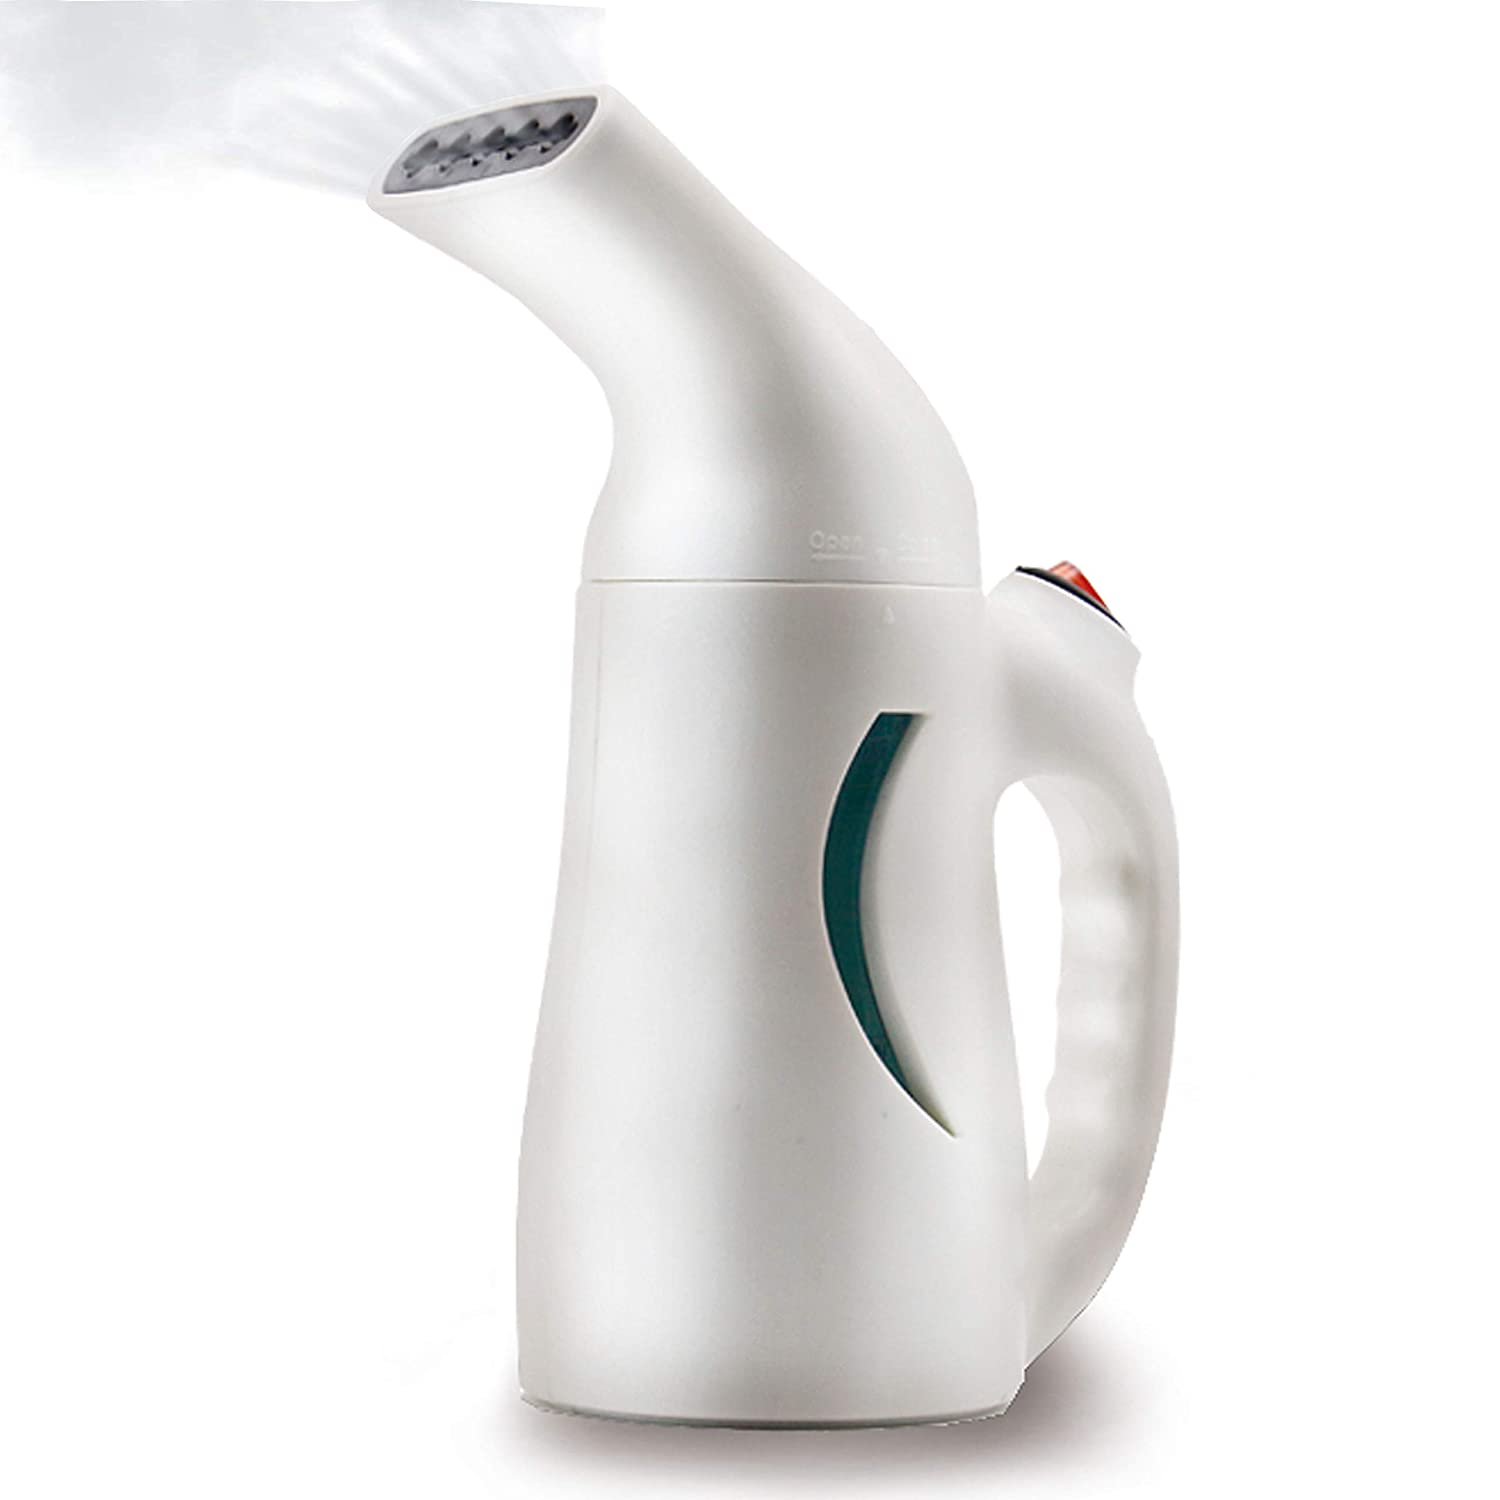 Portable Steamer for Clothes,Handheld Clothes Steamer Wrinkle Remover, Sterilize. Fast Heat-up with High Capacity, Steam Iron for Home/Travel,with Automatic Shut-Off Safety Protection,100% Safe Yilin